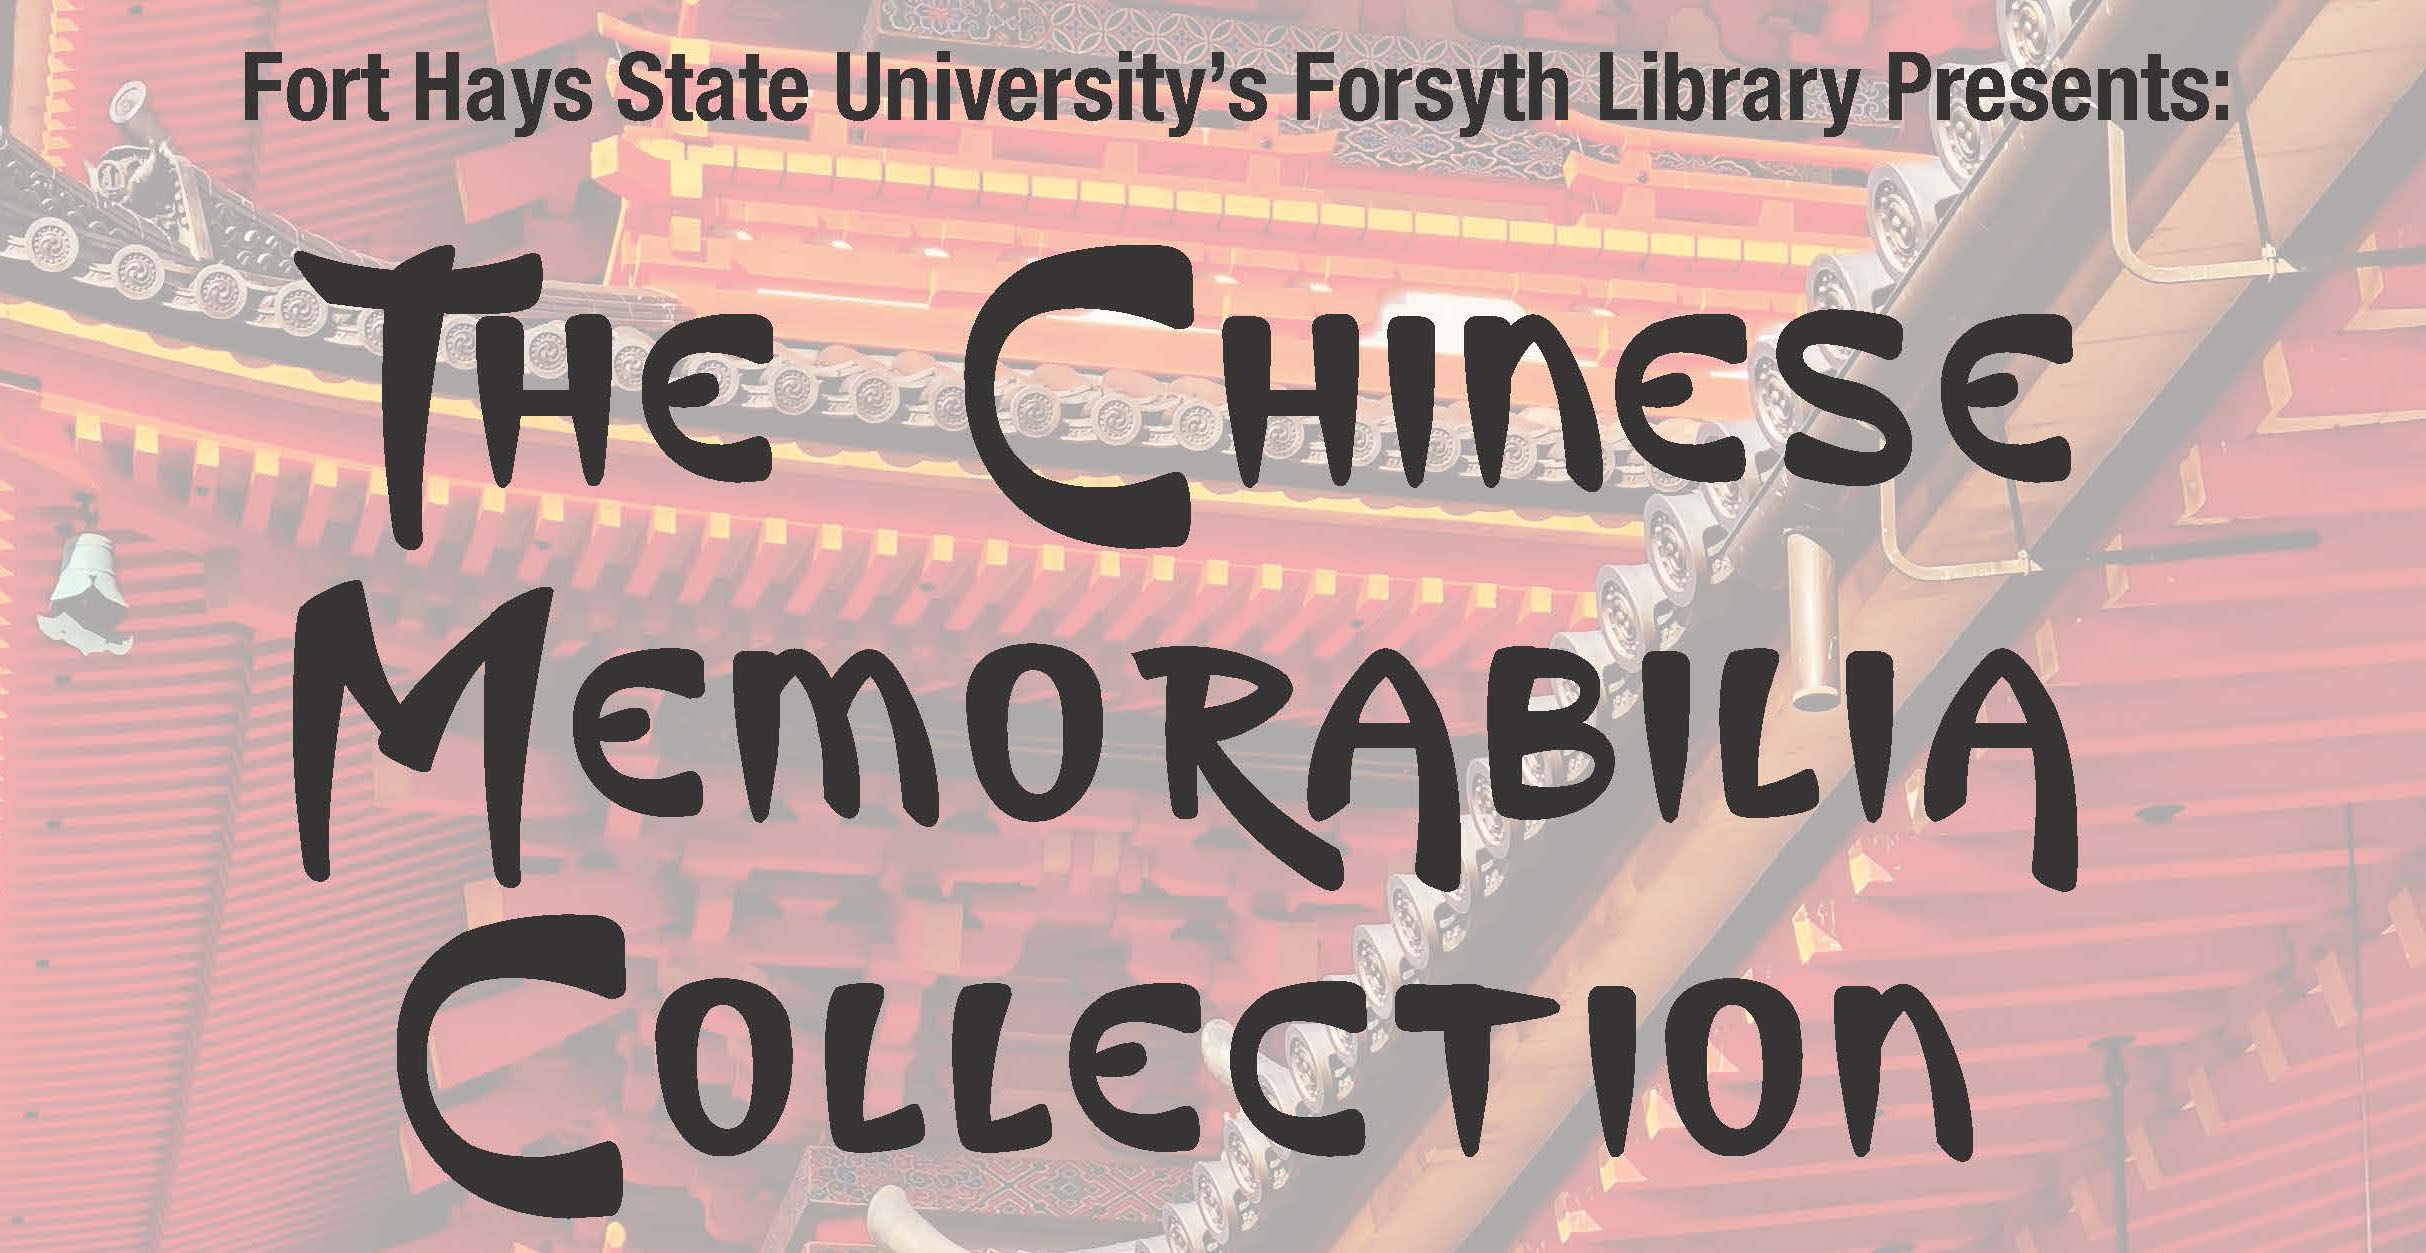 Chinese Memorabilia Collection